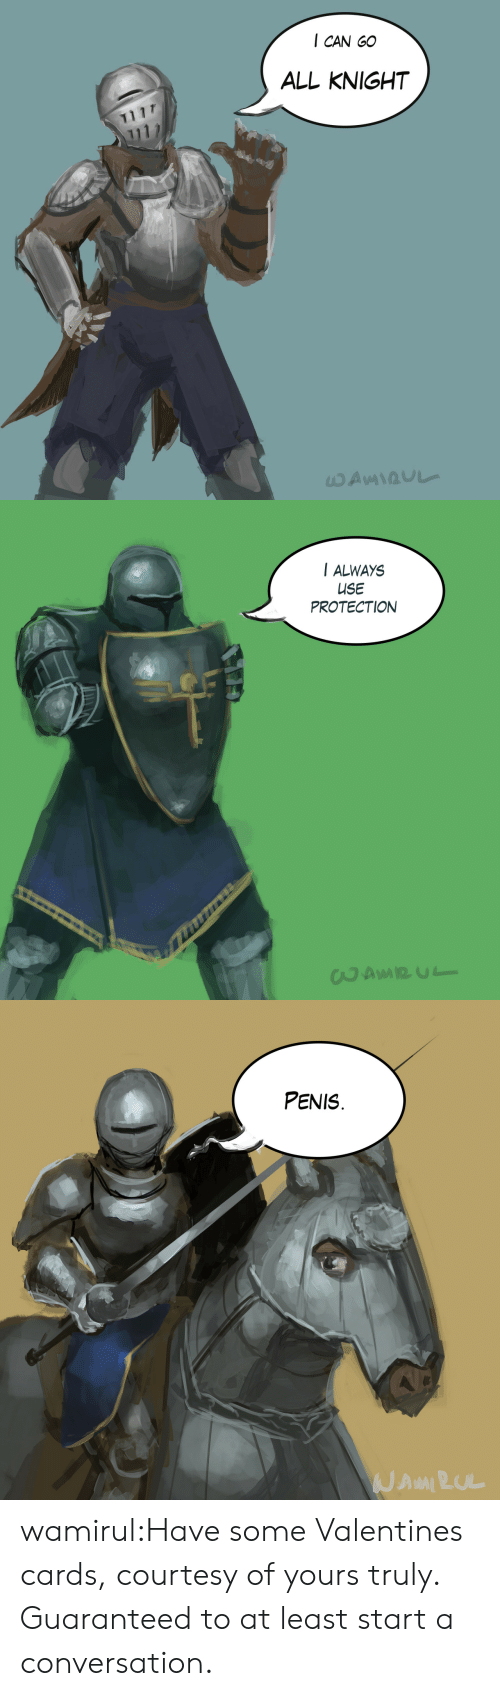 yours truly: I CAN GO  ALL KNIGHT   I ALWAYS  USE  PROTECTION   PENIS wamirul:Have some Valentines cards, courtesy of yours truly. Guaranteed to at least start a conversation.